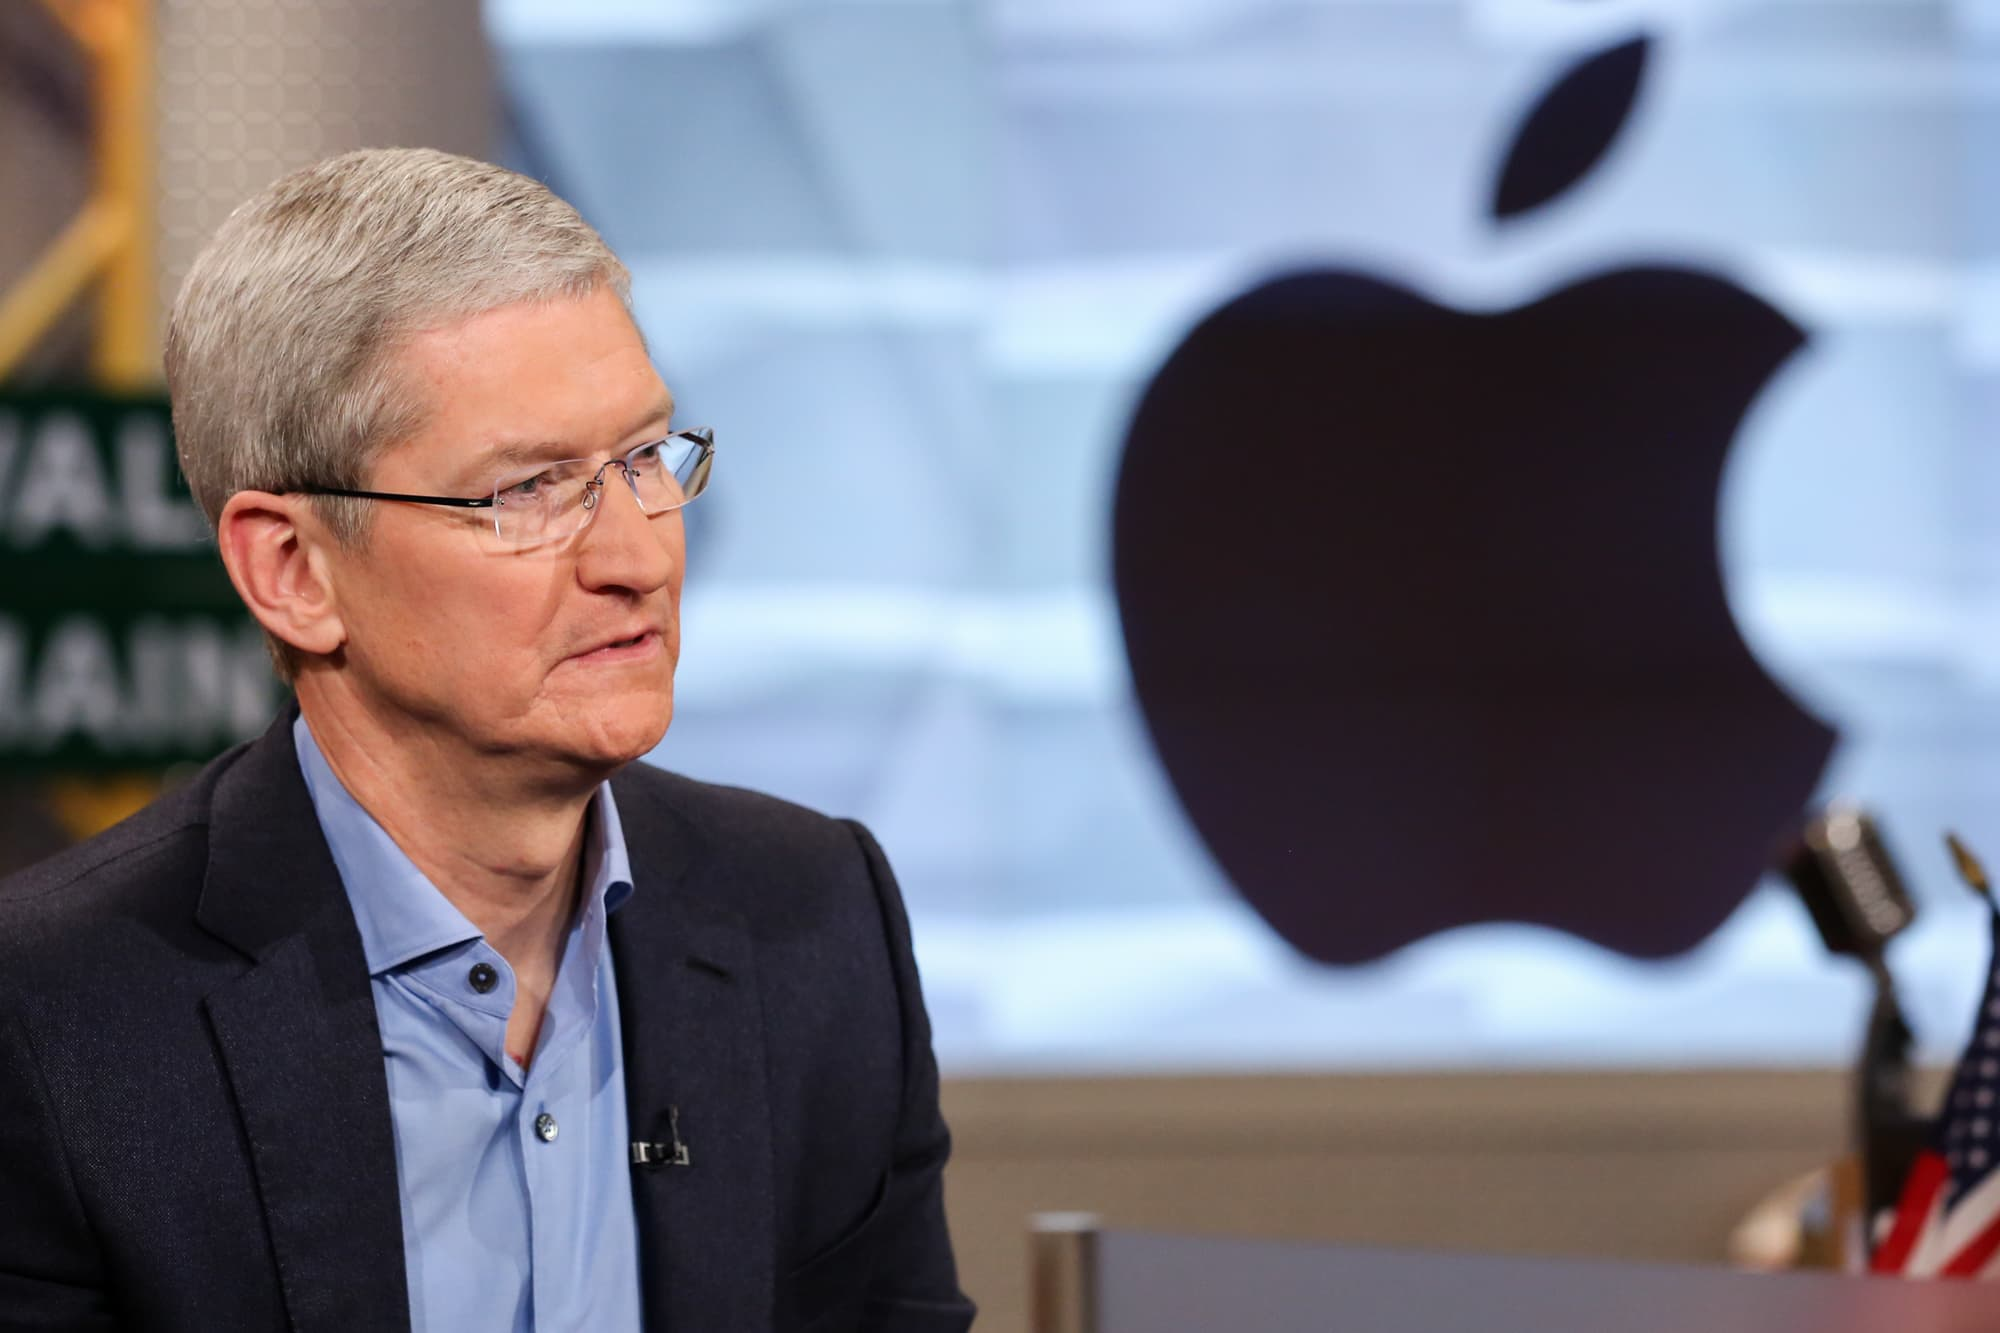 Sources: Apple signed on 200,000 subscribers to Apple News+ in its first 48 hours in March but has since struggled to add customers (Alex Sherman/CNBC)